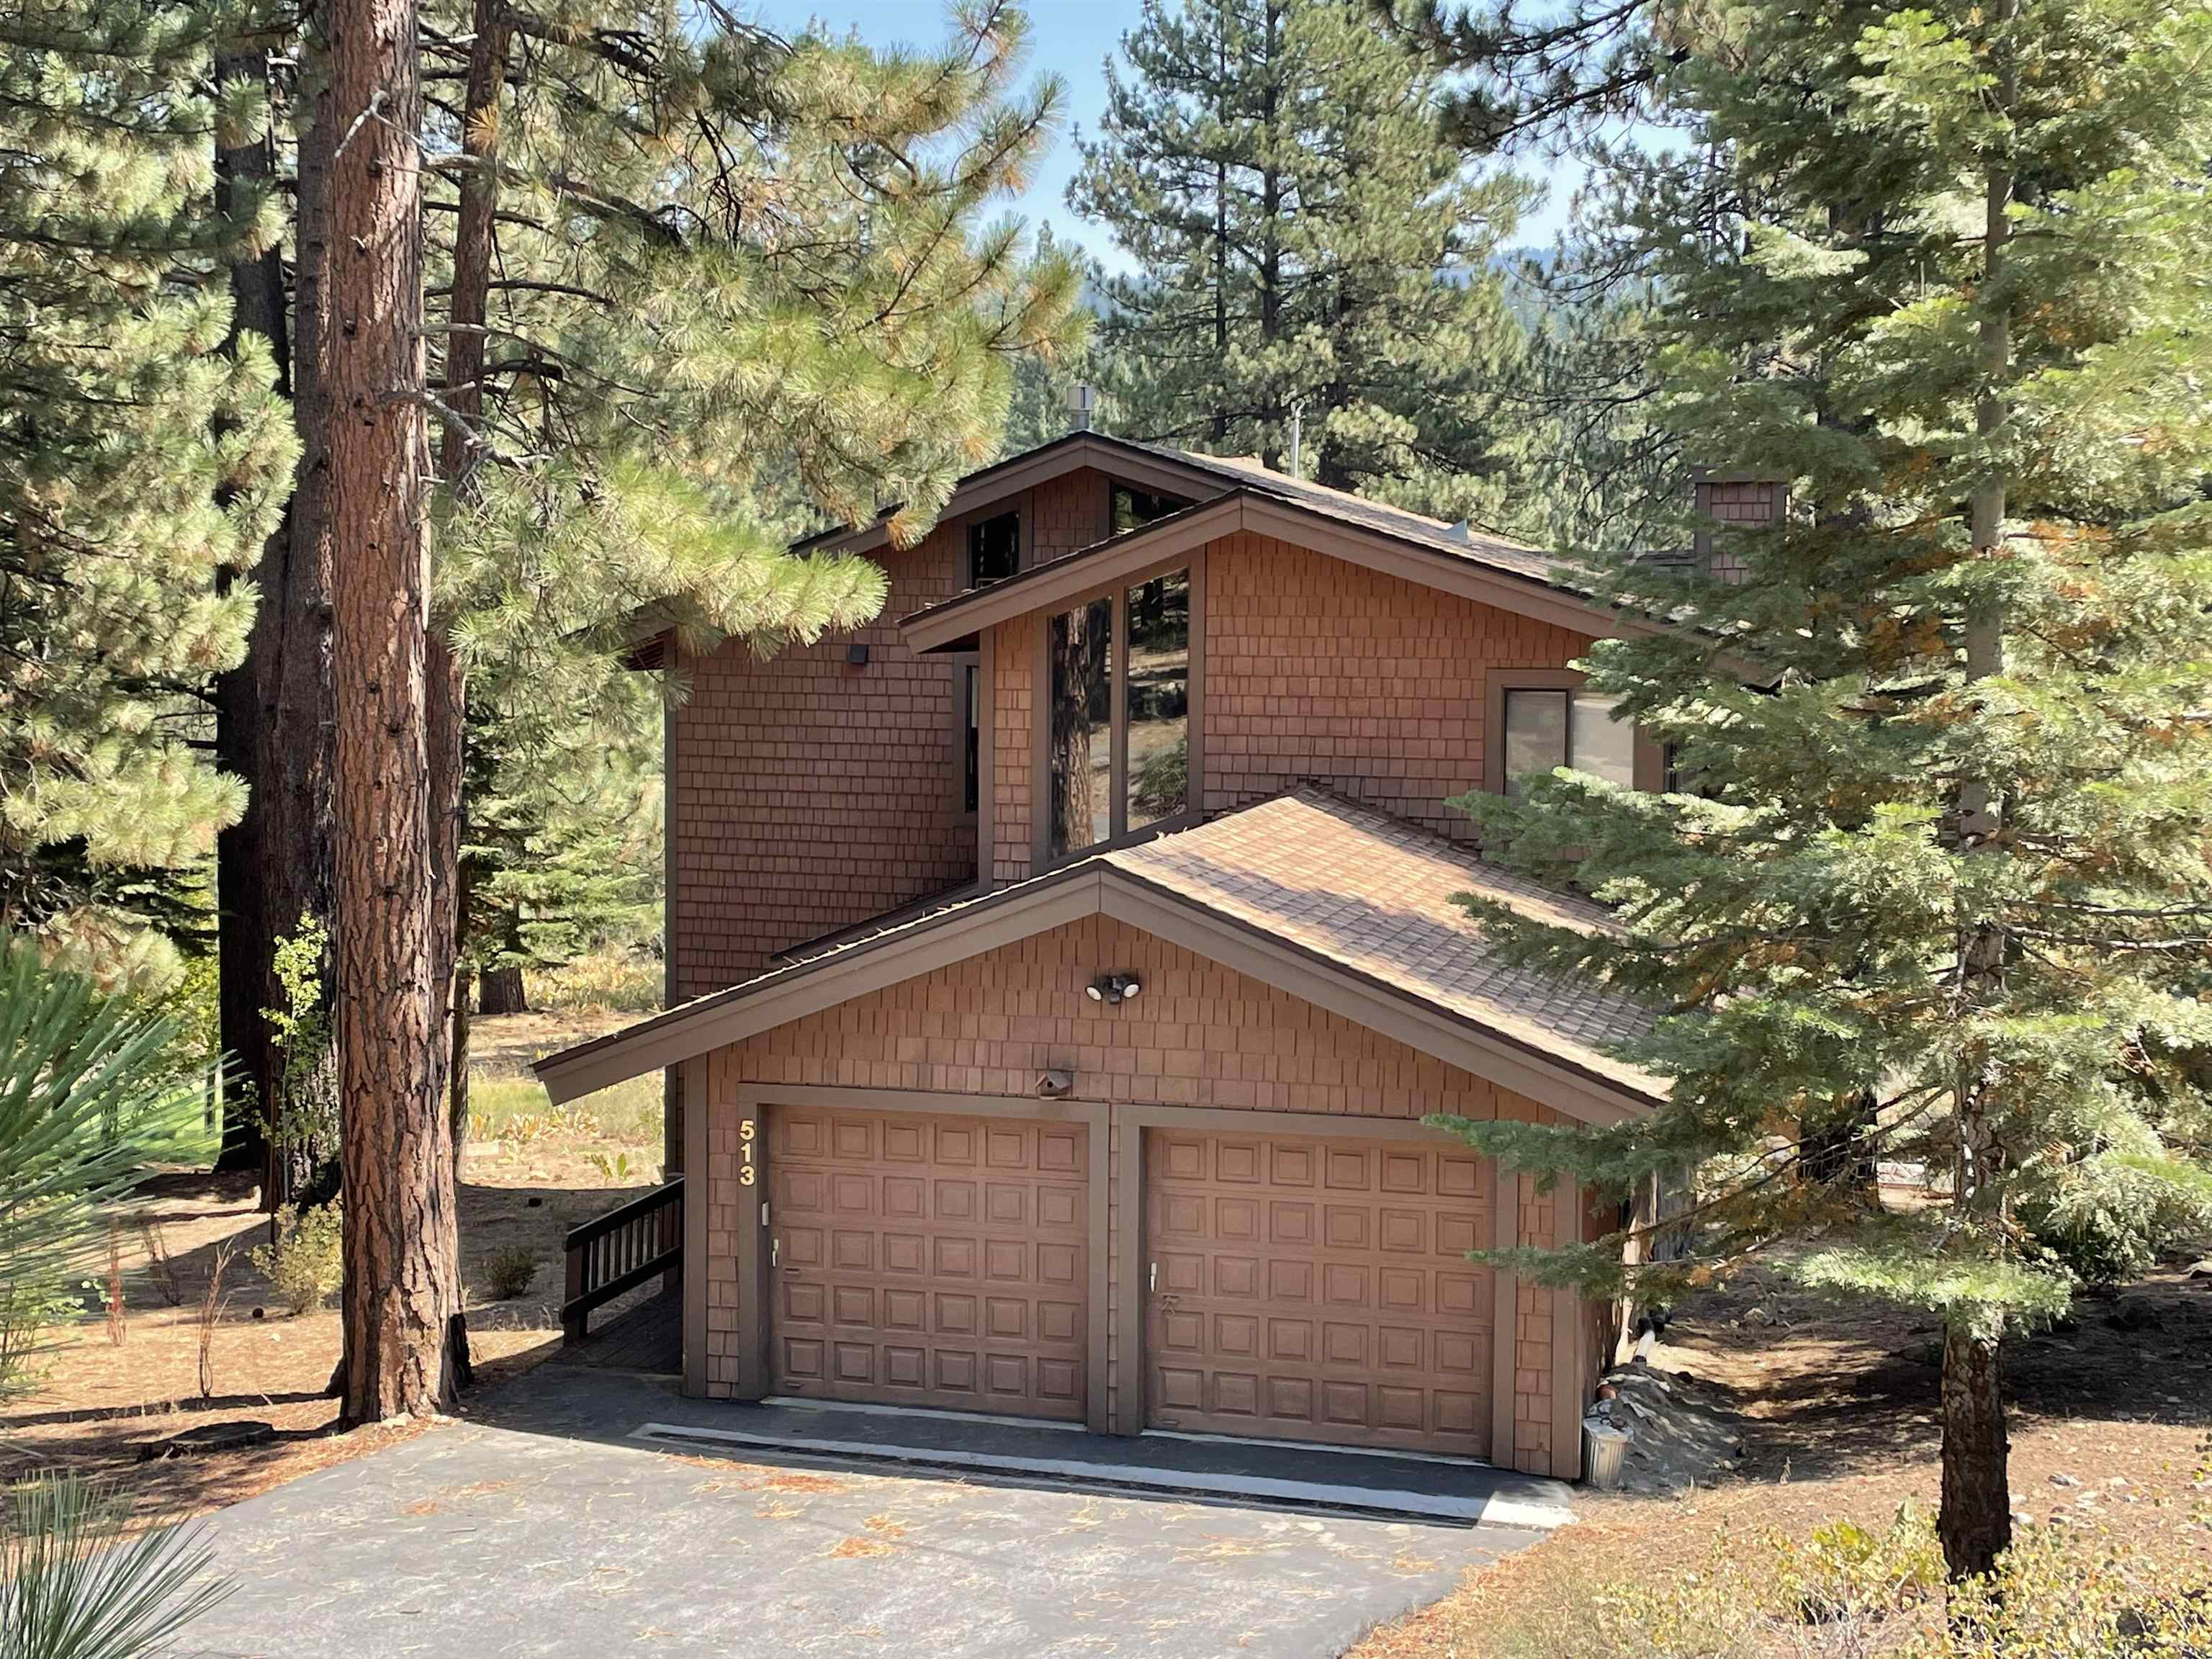 Image for 513 Wolf Tree, Truckee, CA 96161-3901